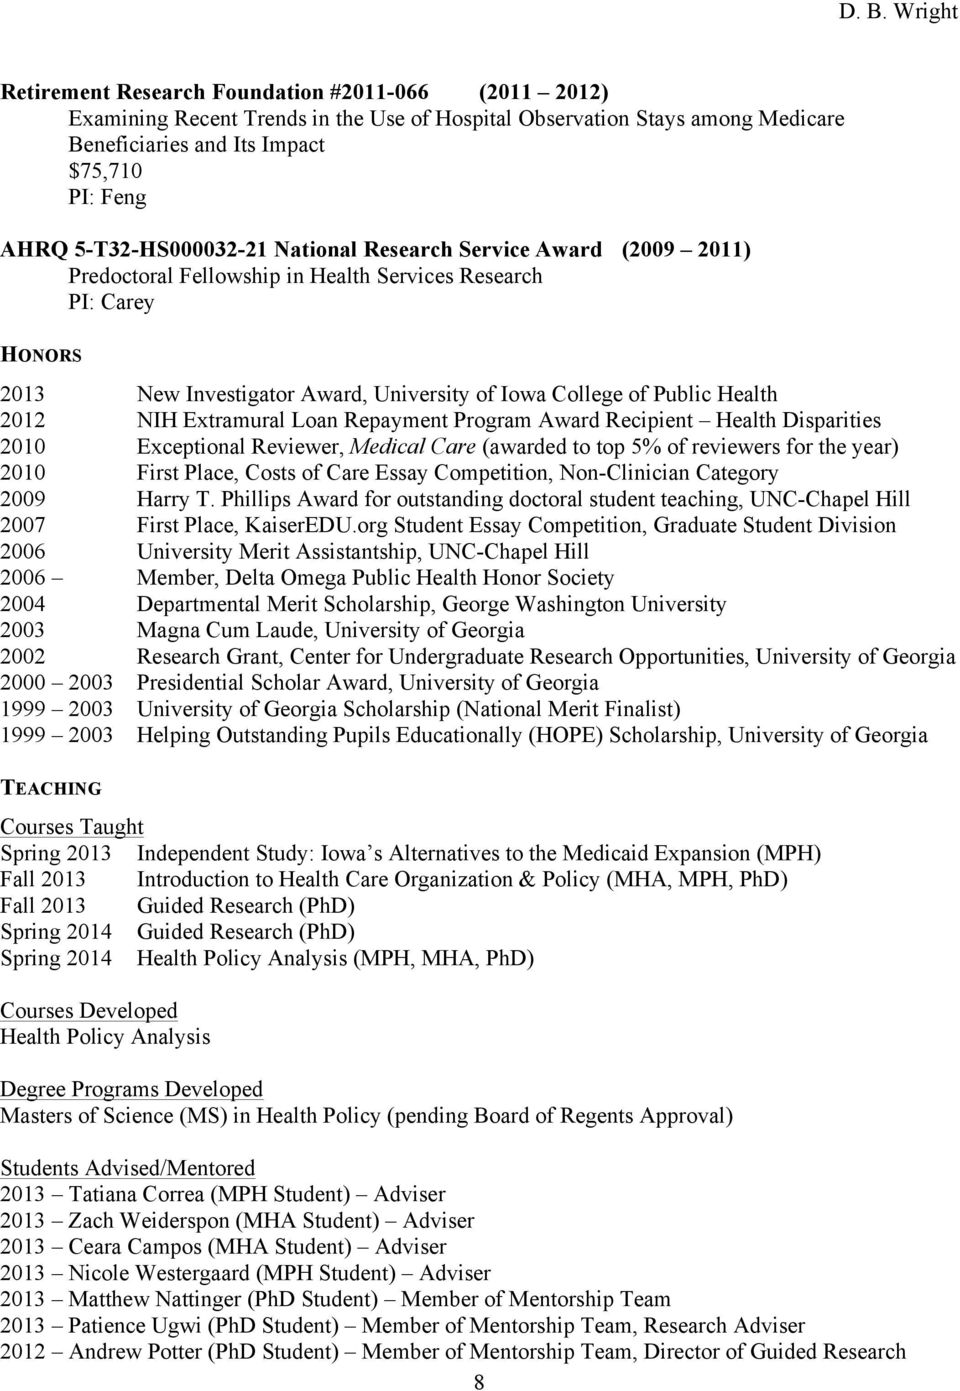 Health 2012 NIH Extramural Loan Repayment Program Award Recipient Health Disparities 2010 Exceptional Reviewer, Medical Care (awarded to top 5% of reviewers for the year) 2010 First Place, Costs of